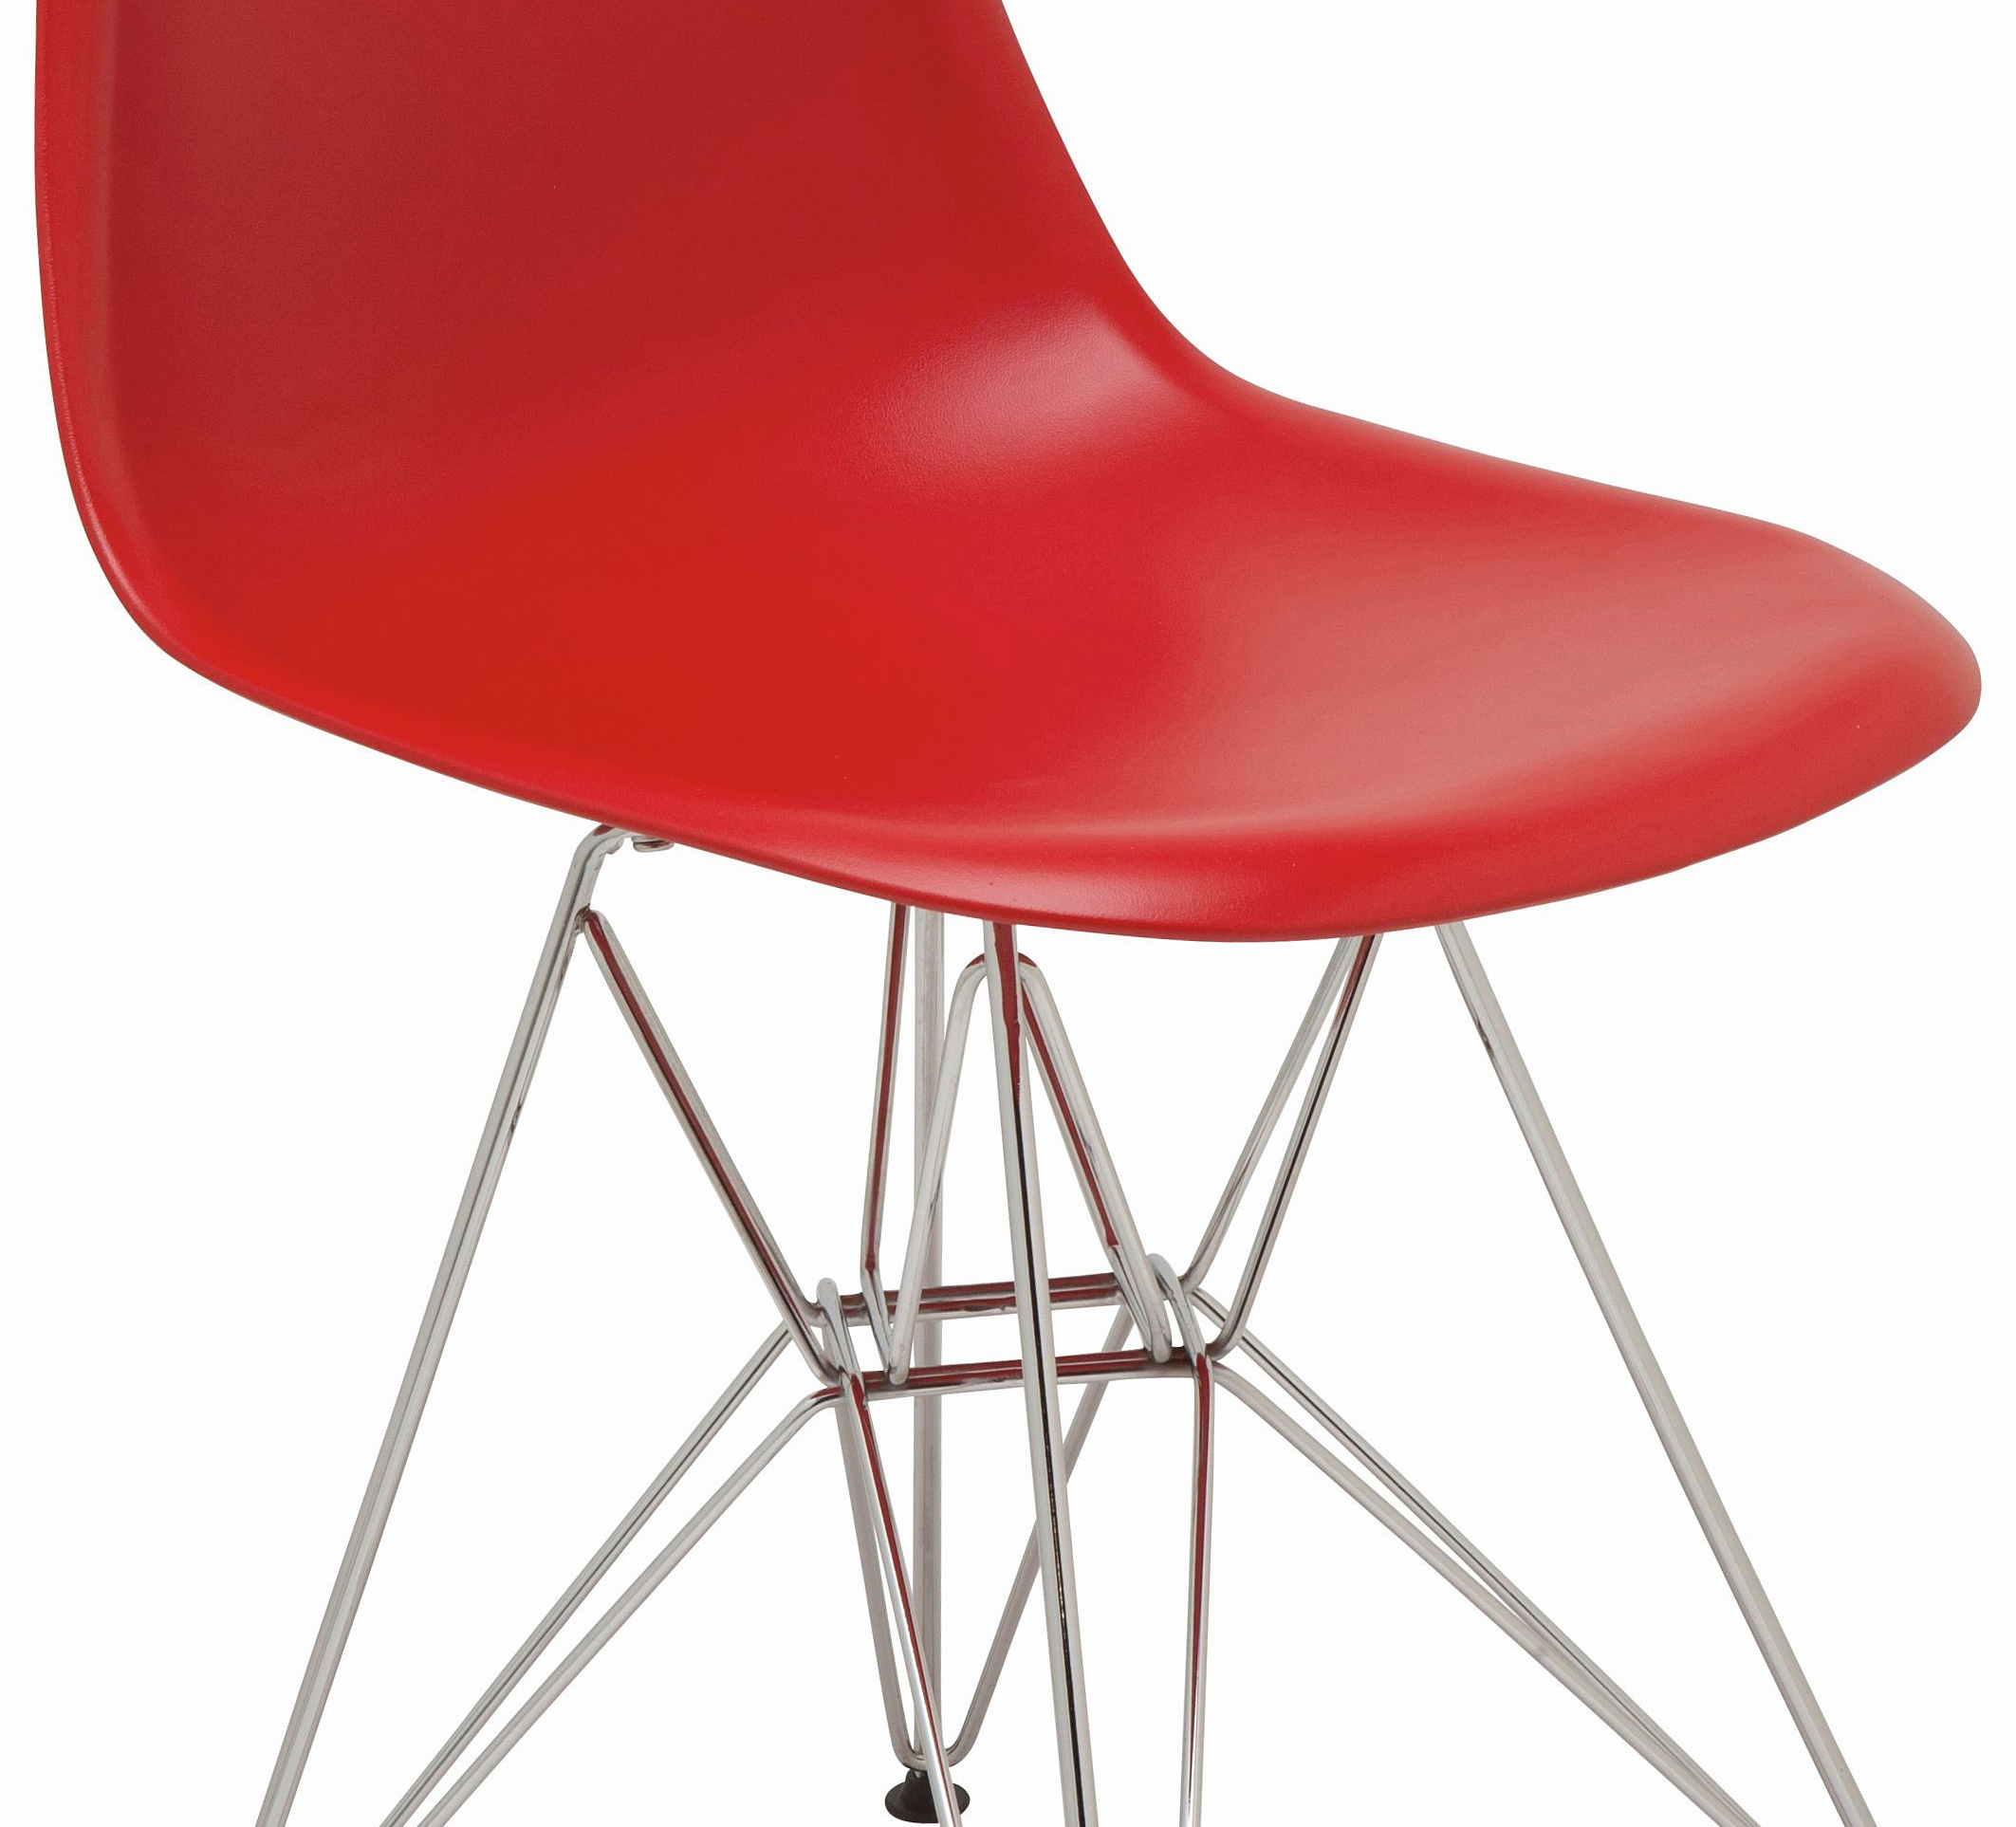 the nuevo max dining chair in red